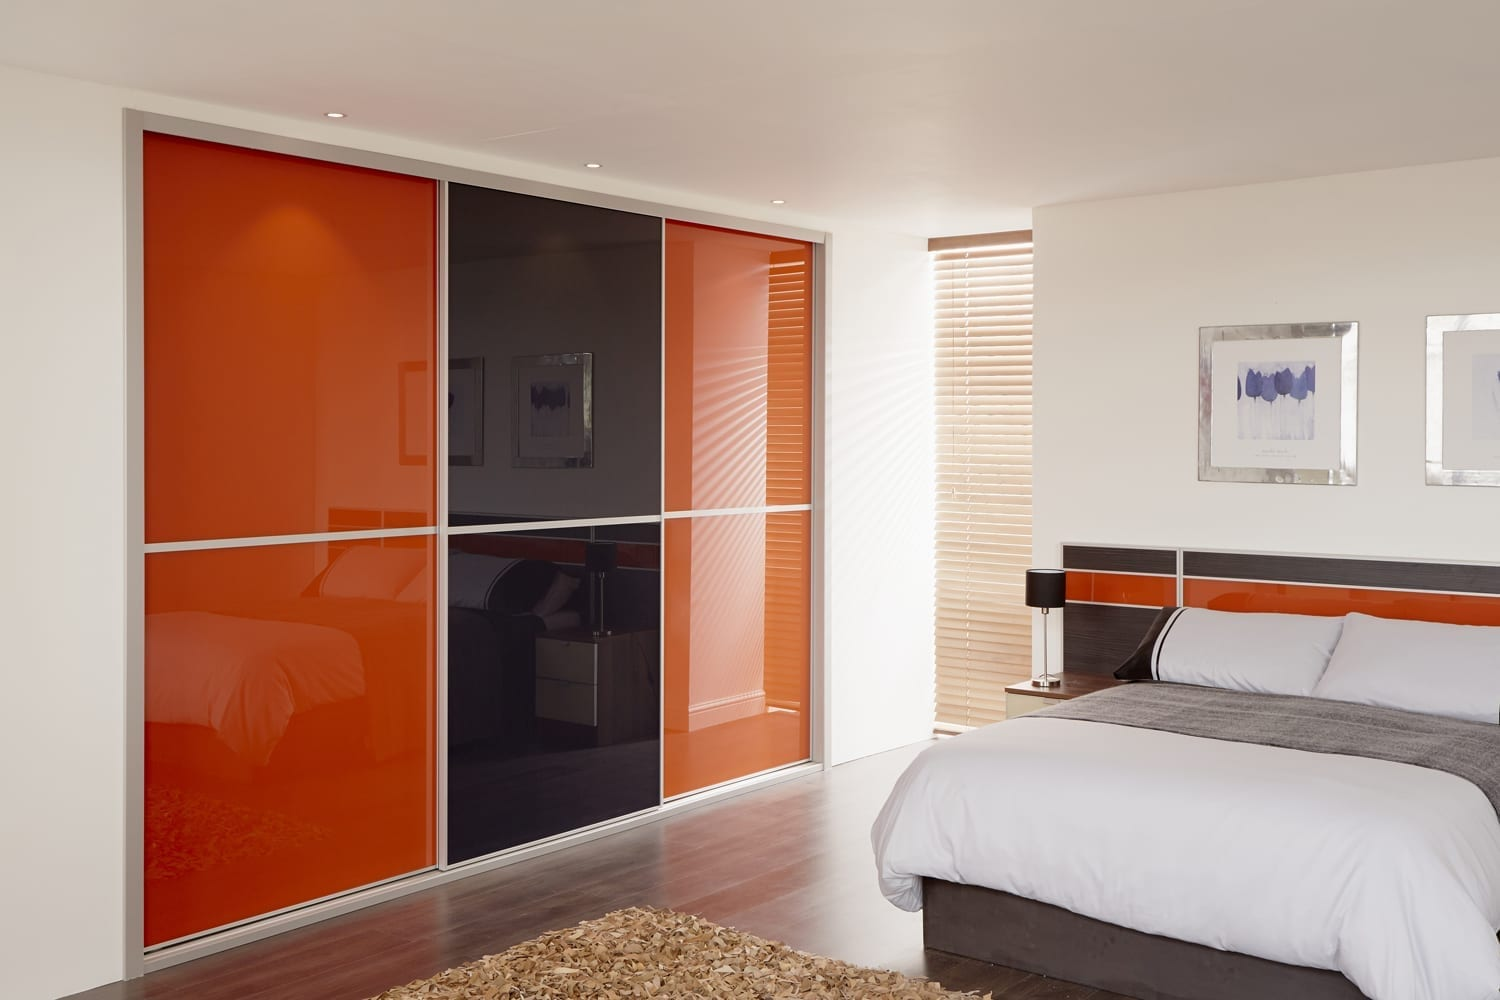 Space Efficient Bedroom Furniture: Easy Space Saving Ideas For A Modern Bedroom